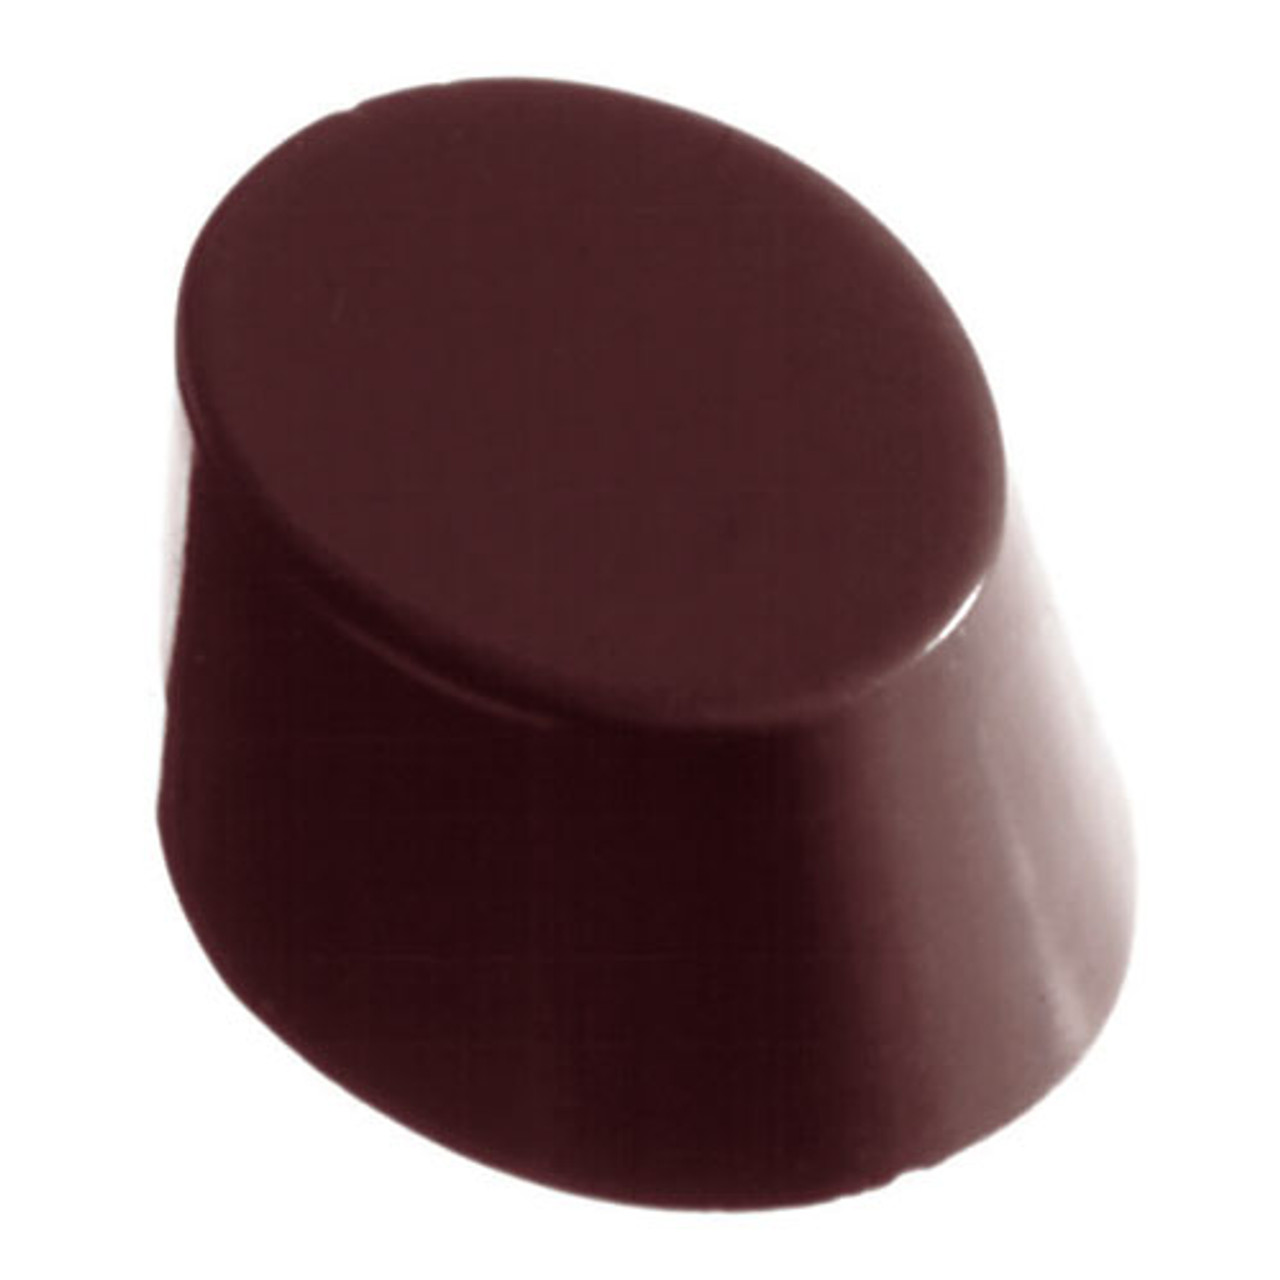 "Chocolate Mold, L 1 1/2"" X W 1 1/8"" X H 3/4"""